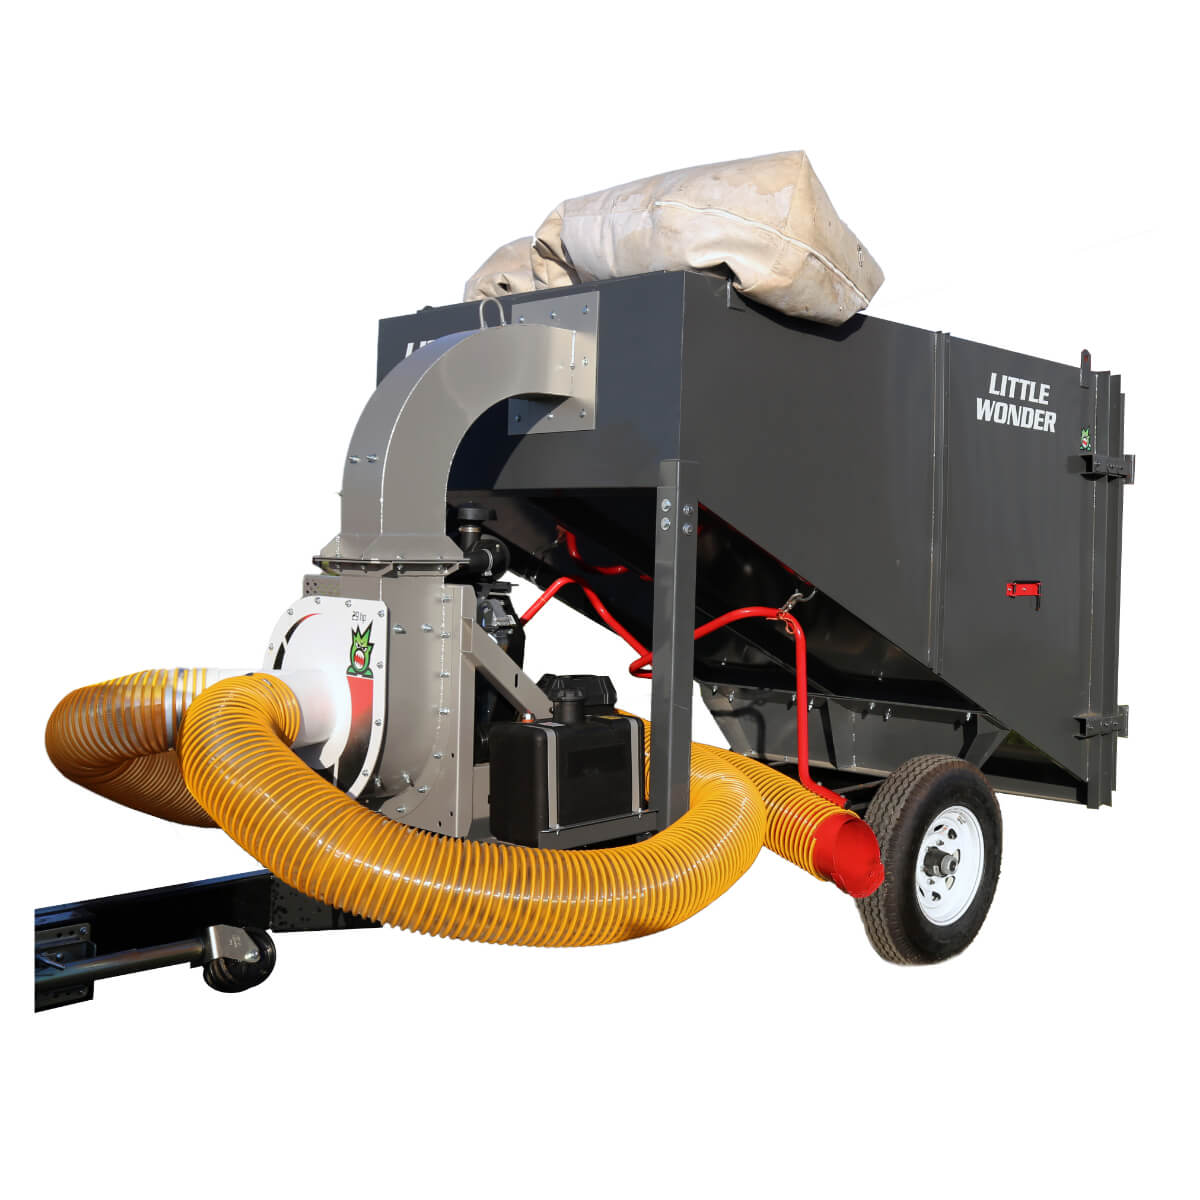 29hp 5 Yard Gravity Dump Self Contained Truckloader Little Wonder Double Trailer Wiring Harness Ground Agvac 5s Agricultural Vacuum